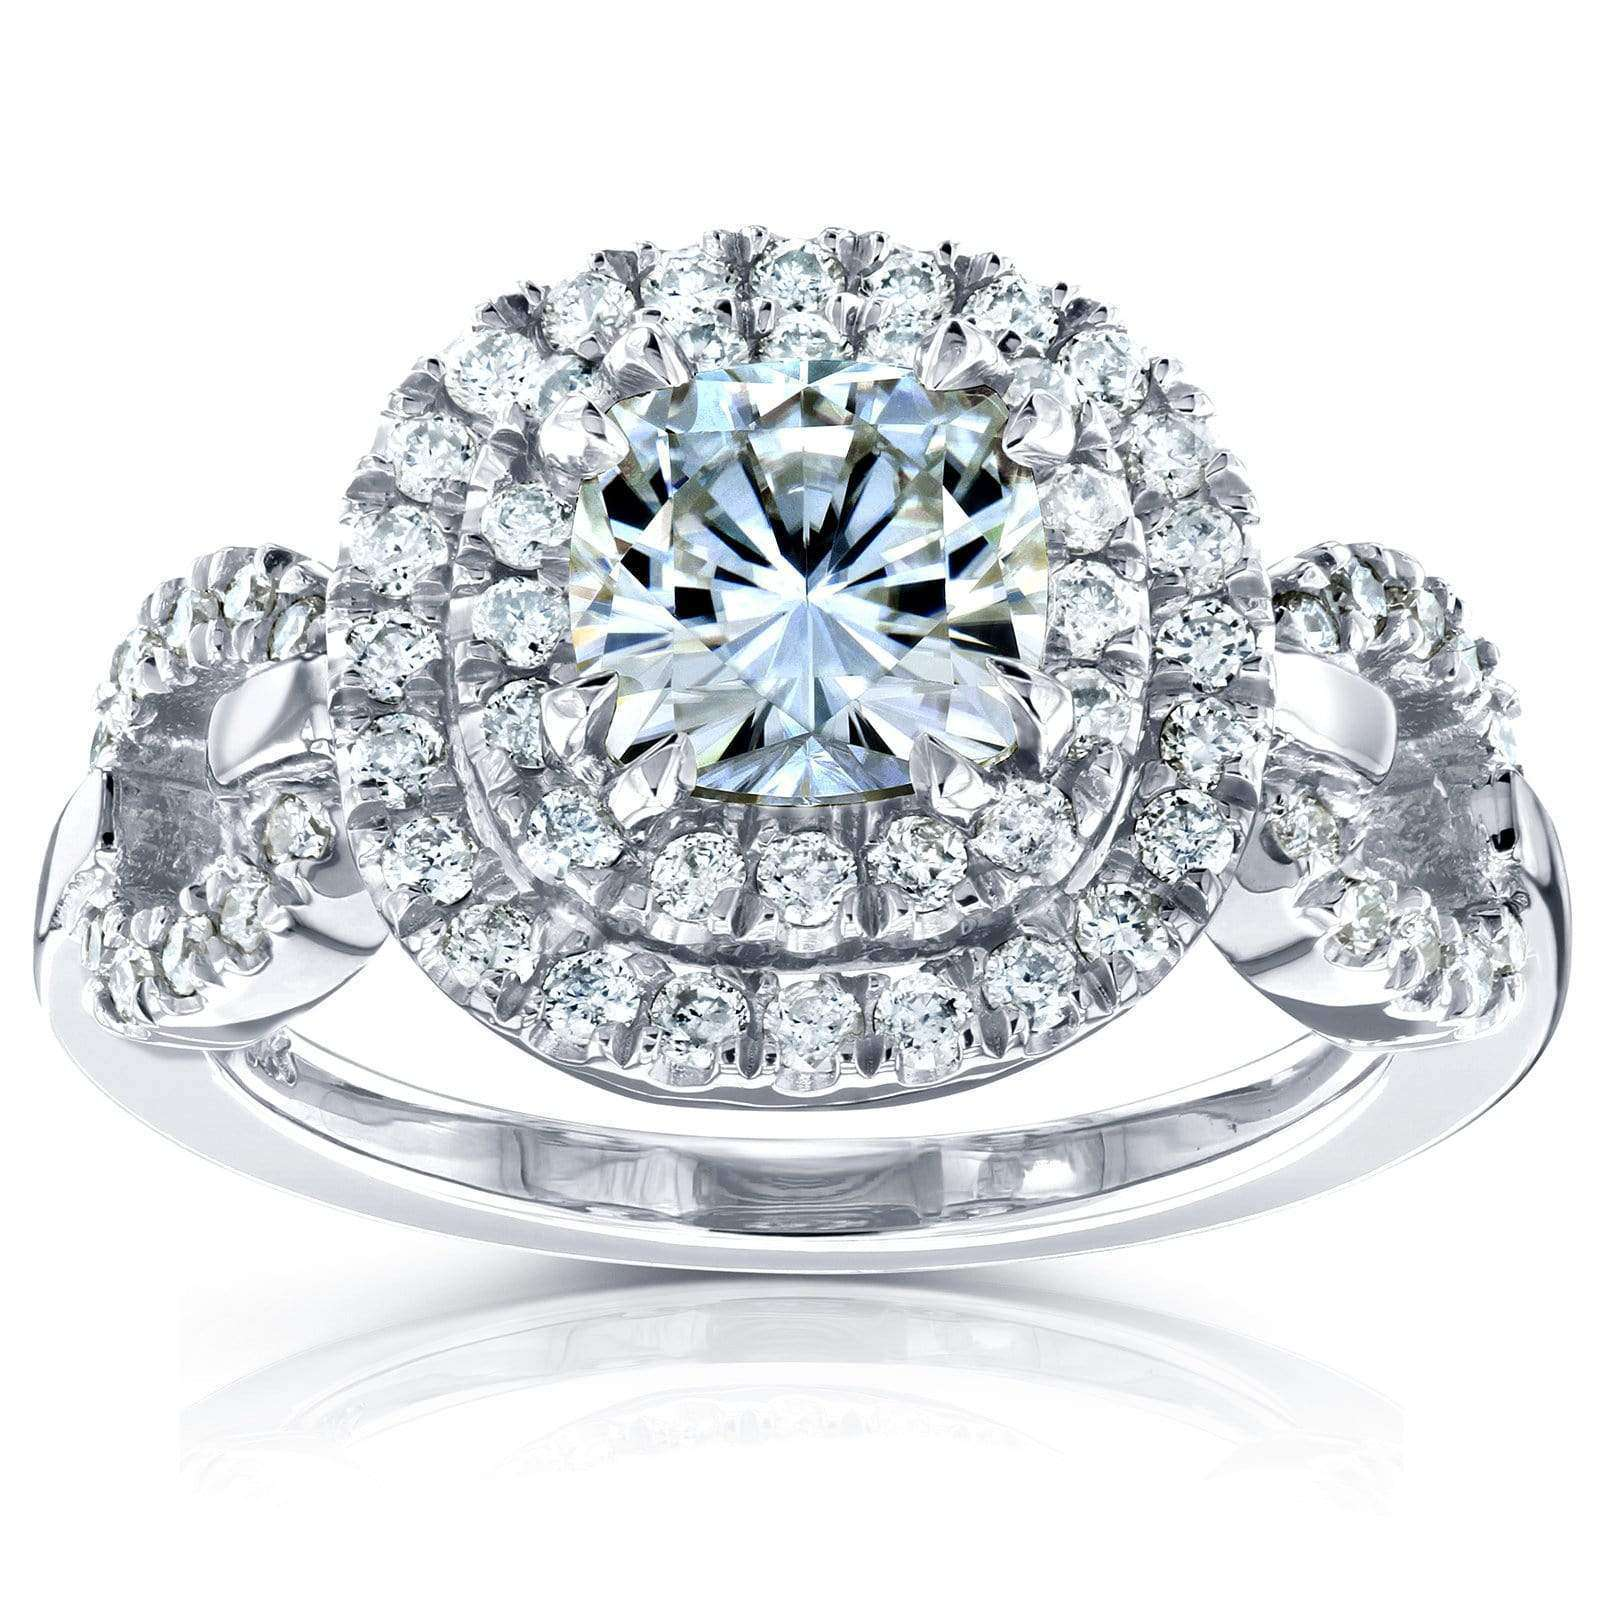 Coupons Cushion-cut Moissanite Engagement Ring with Halo Diamond 1 3/5 CTW 14k White Gold - 9.5